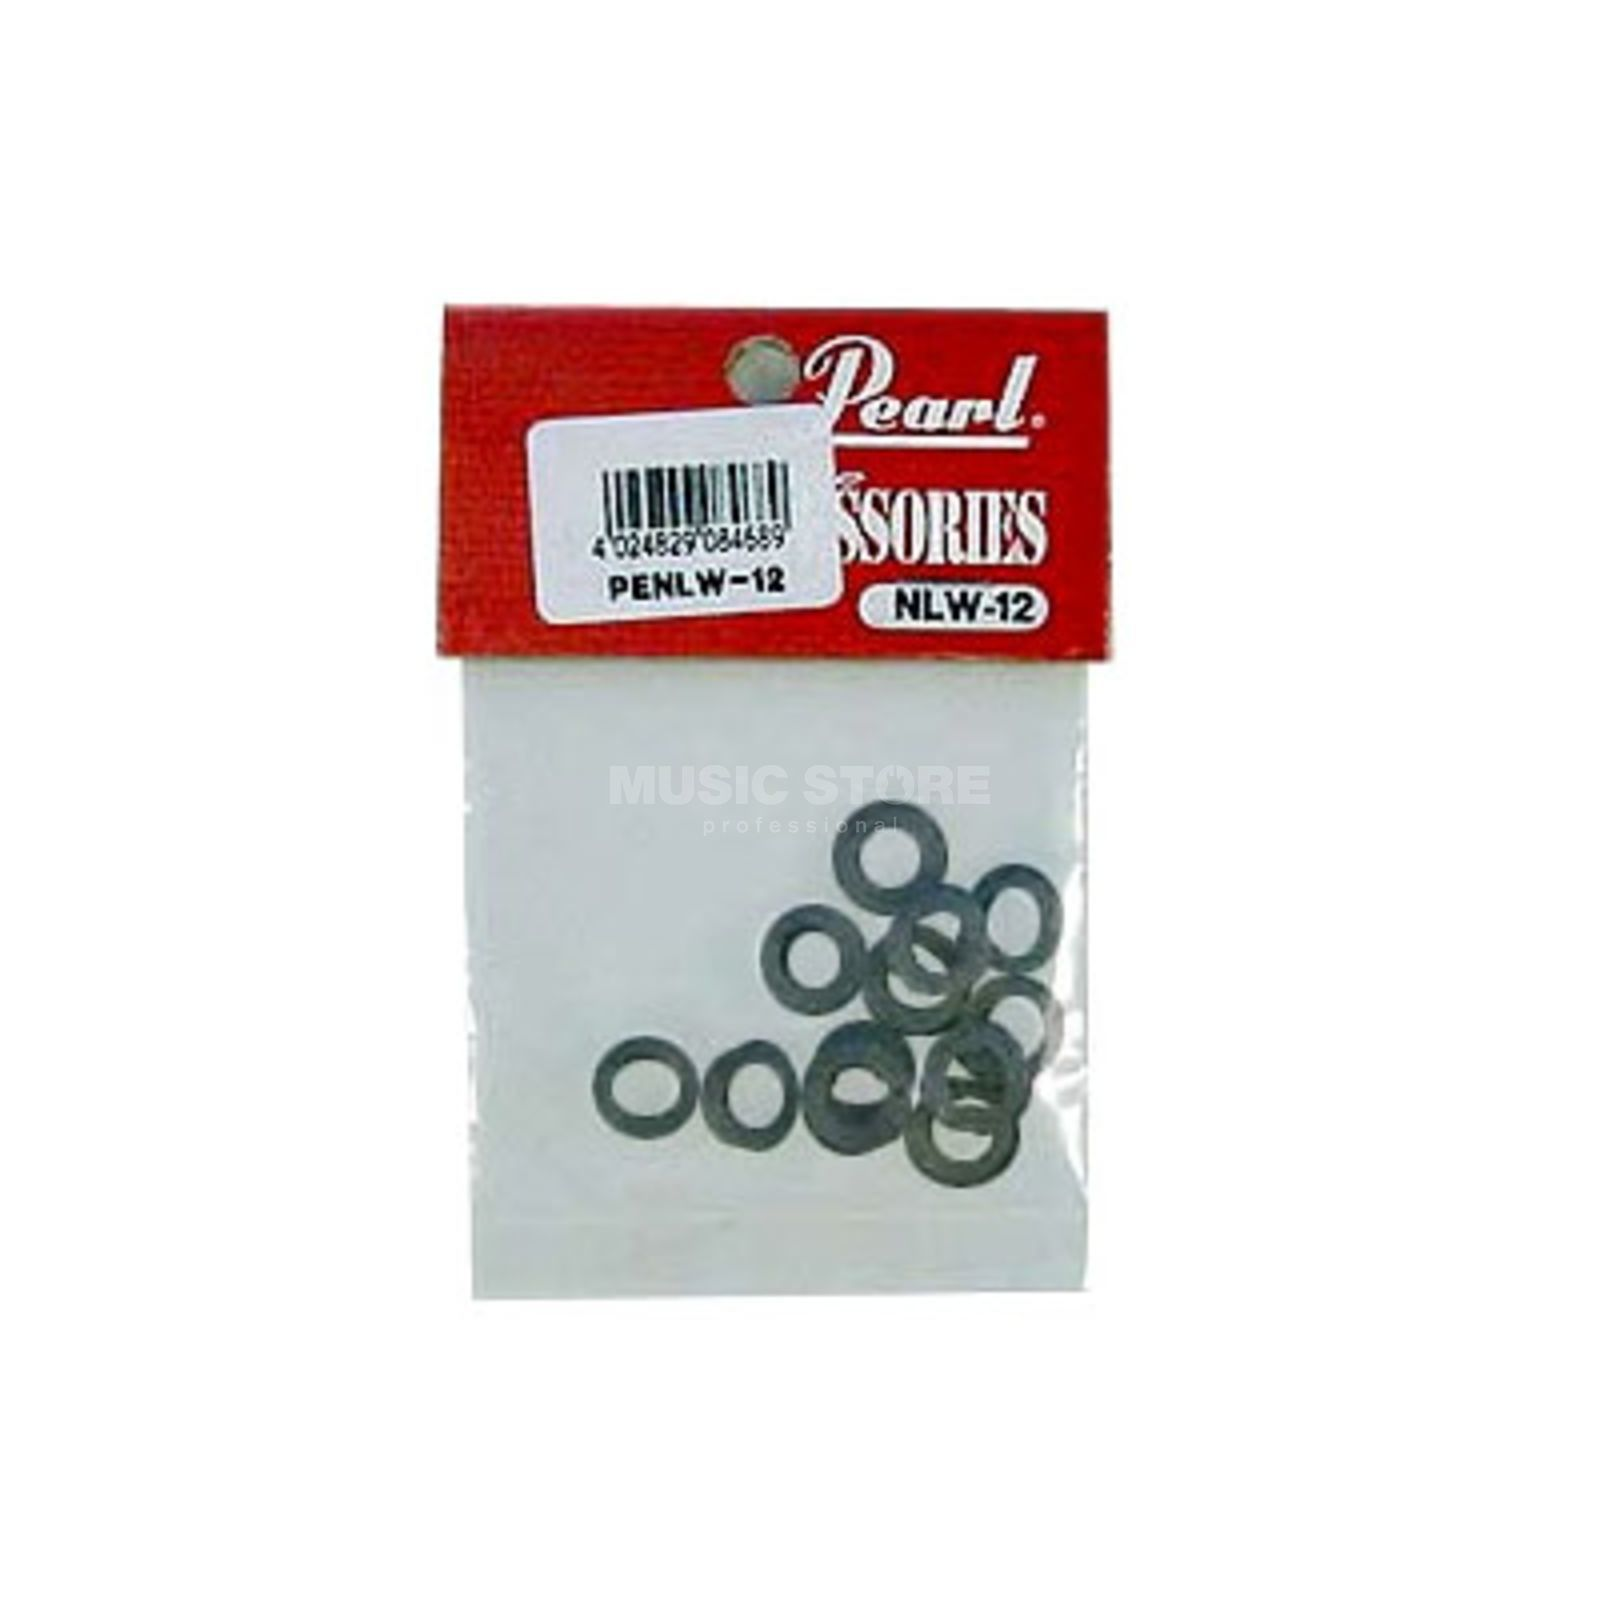 Pearl Washers NLW-12B/12, nylon, black, 12 pcs Produktbillede